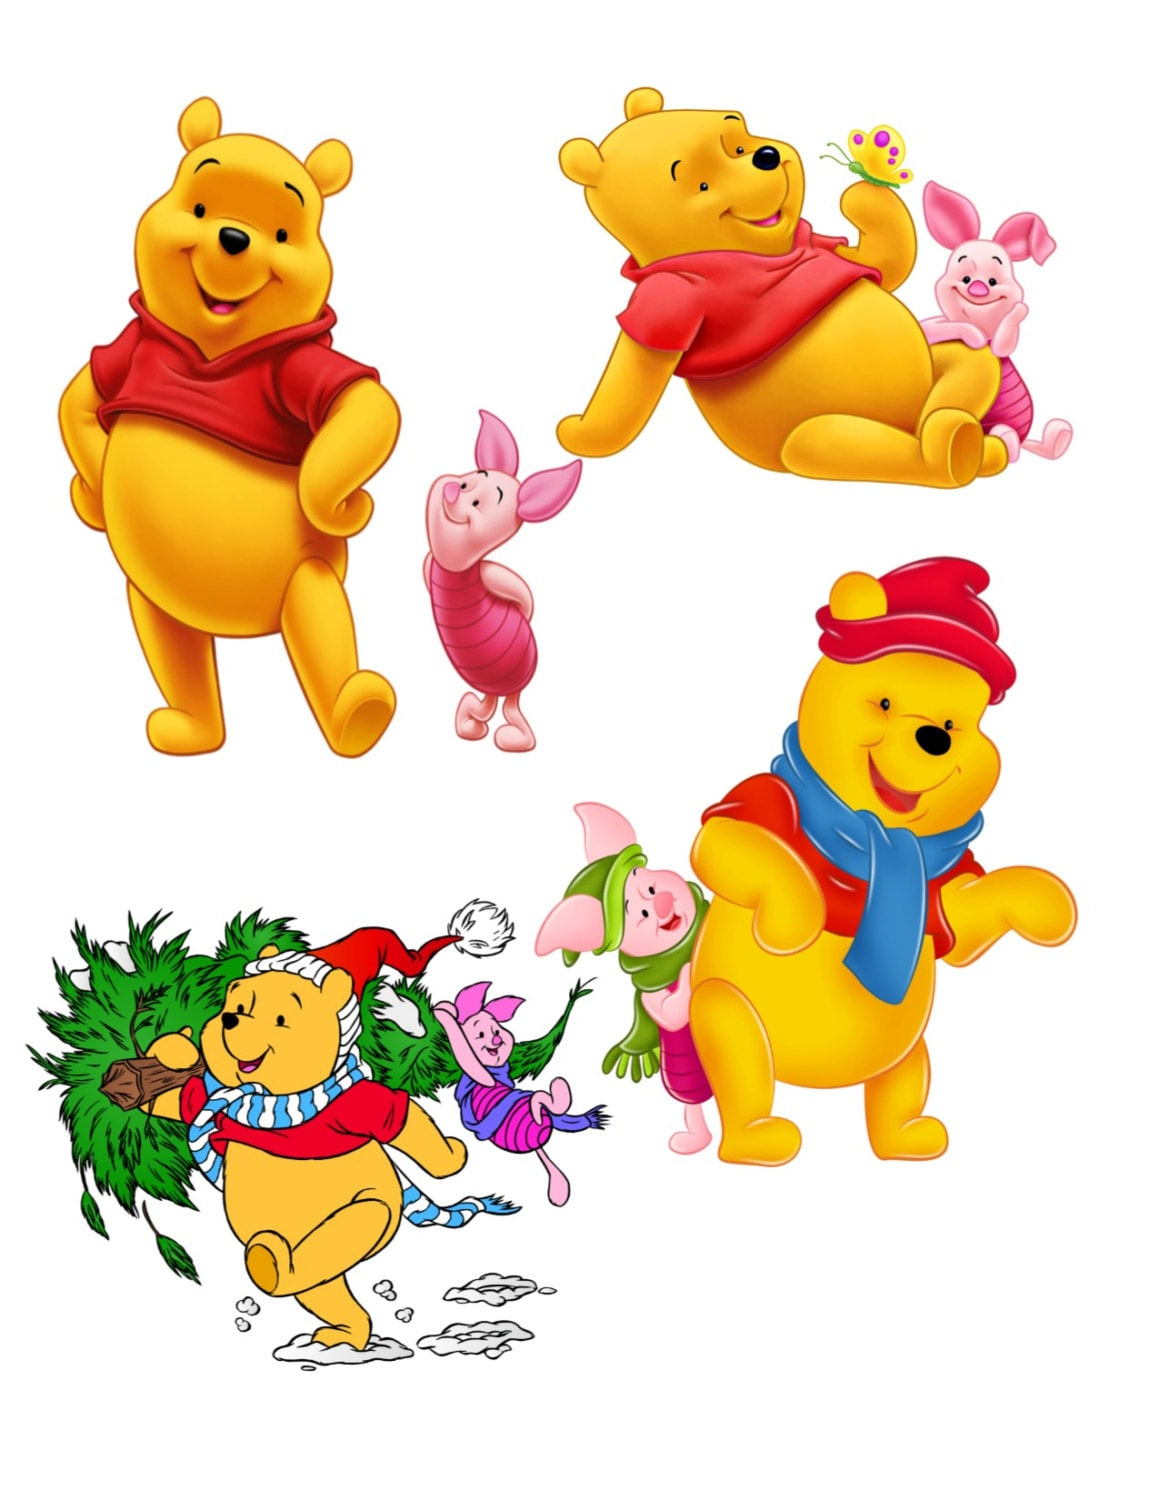 It's just a graphic of Légend Pooh Bear Images